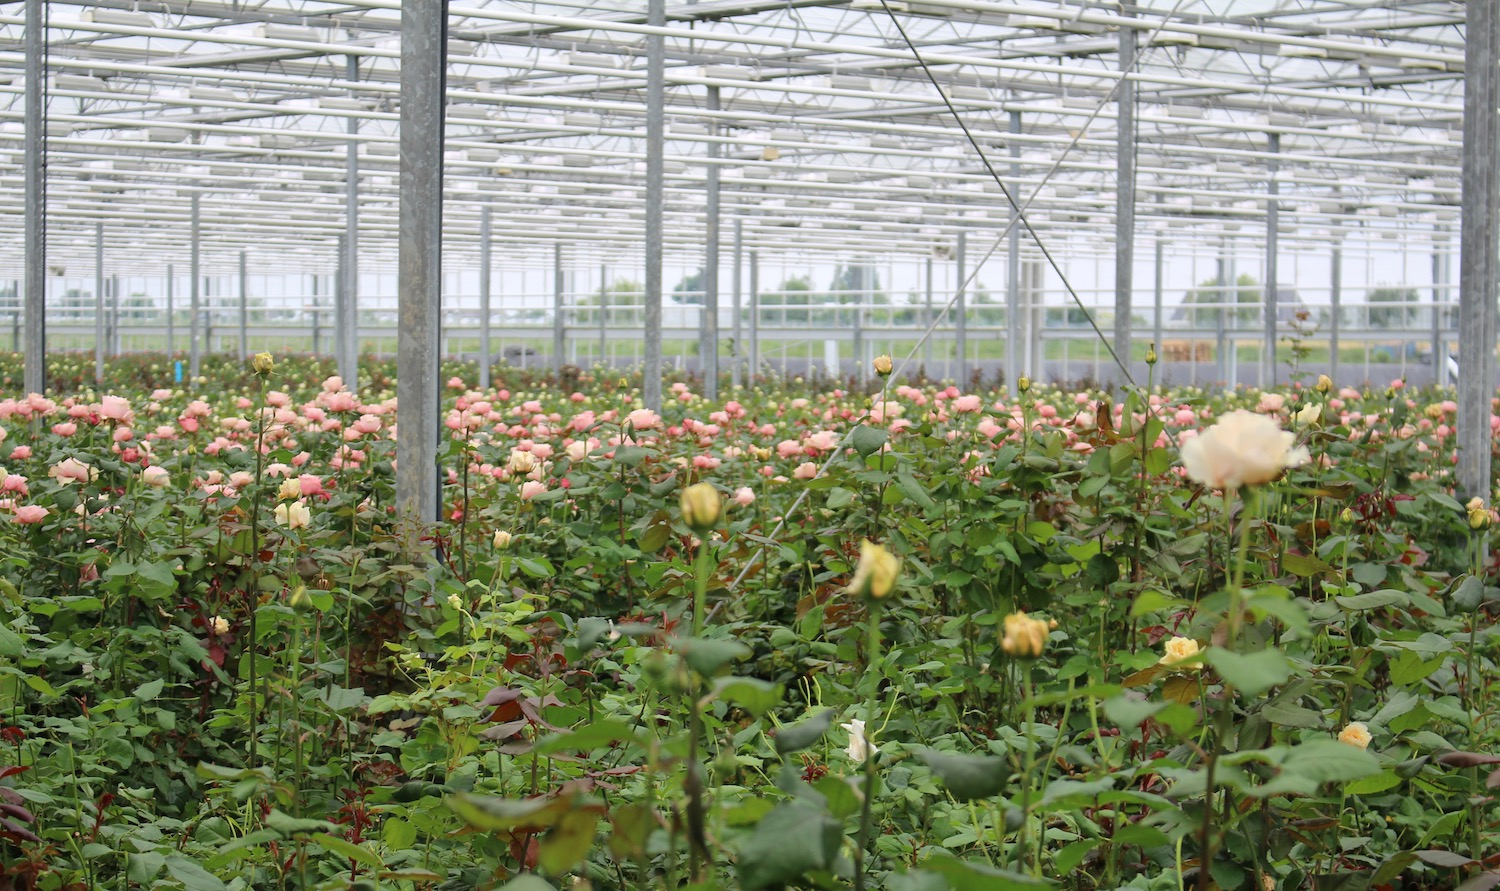 Roses growing at the VIP Roses glasshouse in Holland